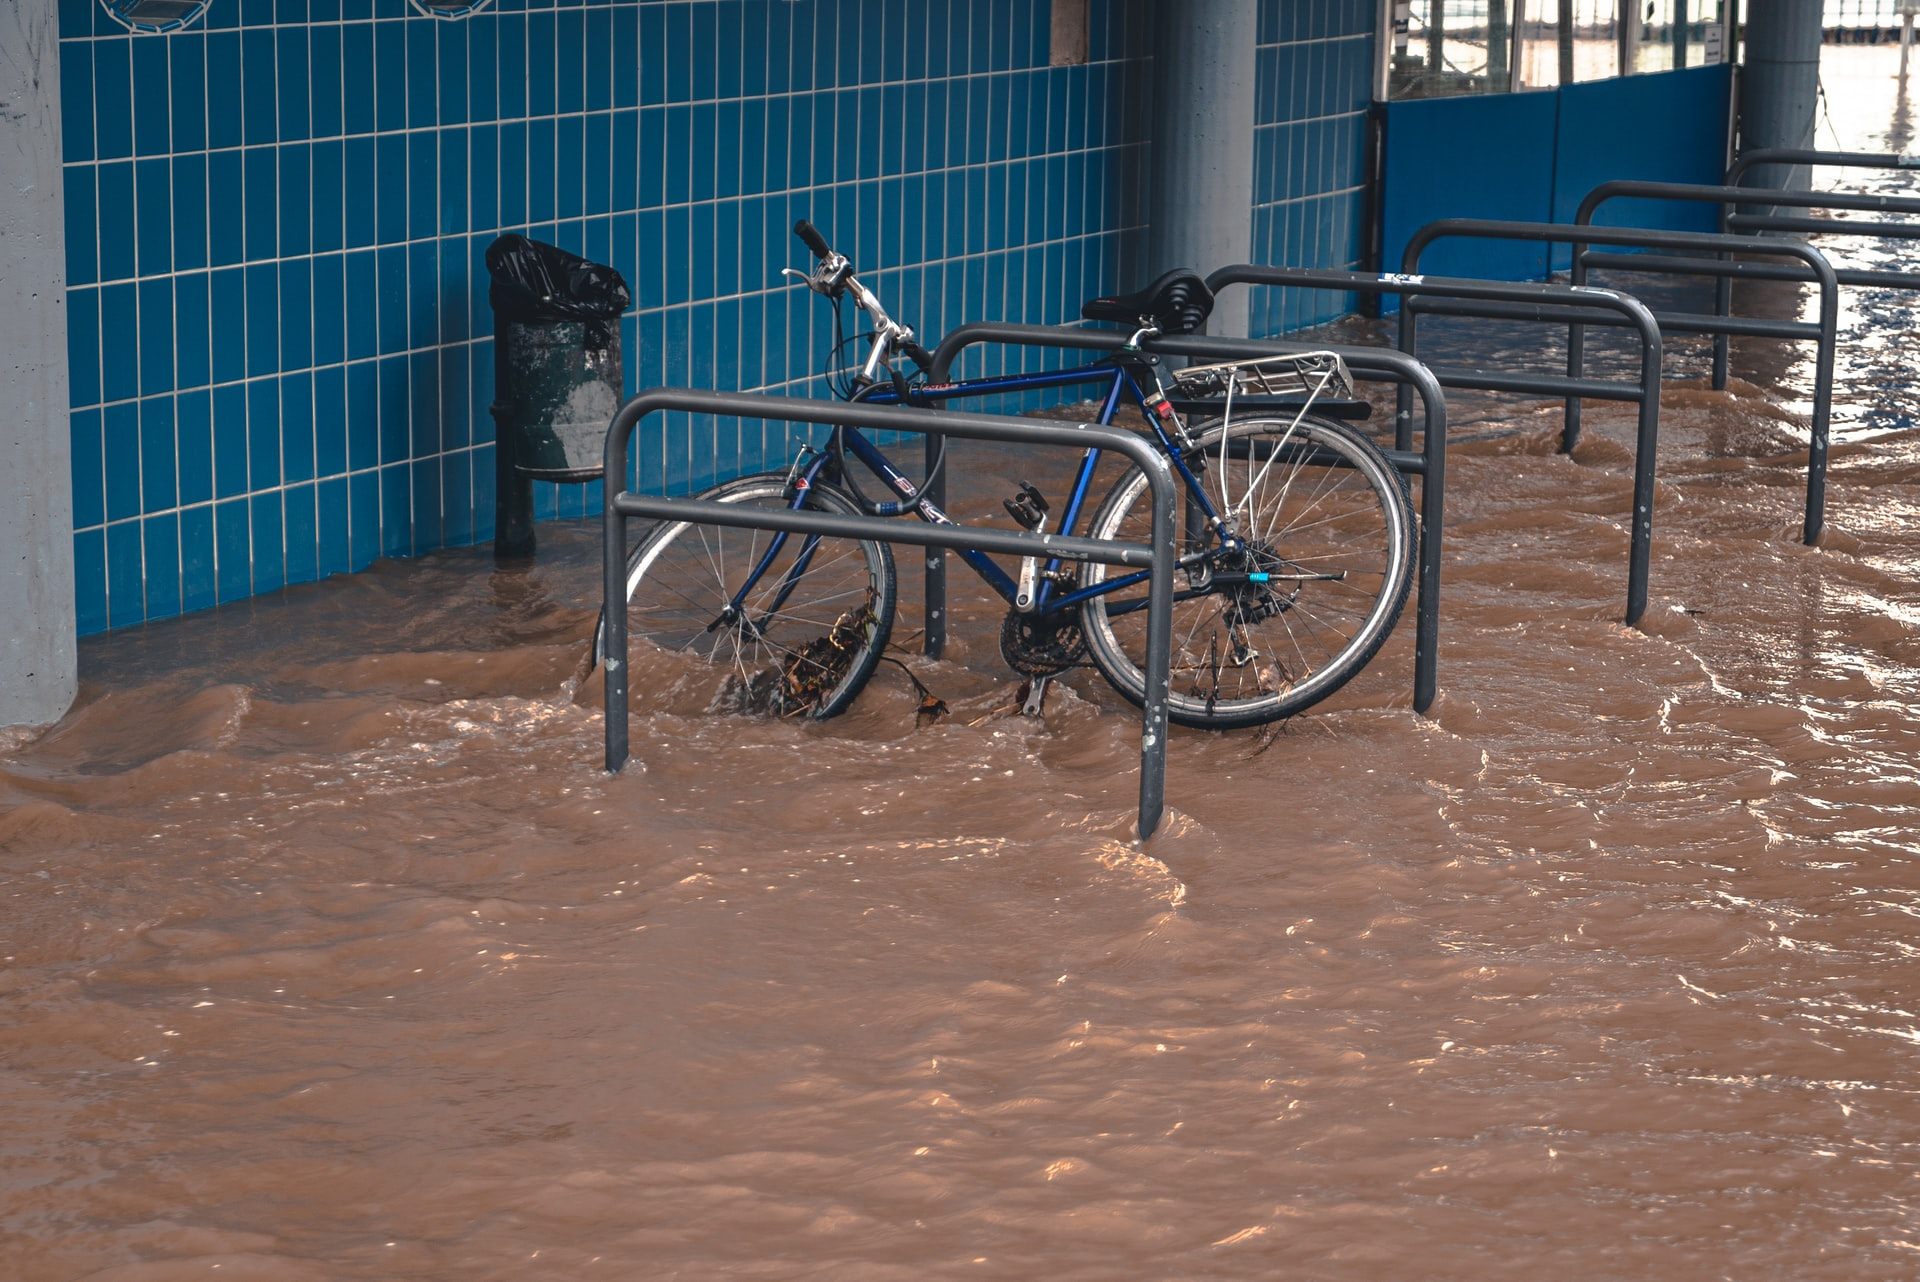 Bike in flooded bike parking area, Photo by Mika Baumeister on Unsplash